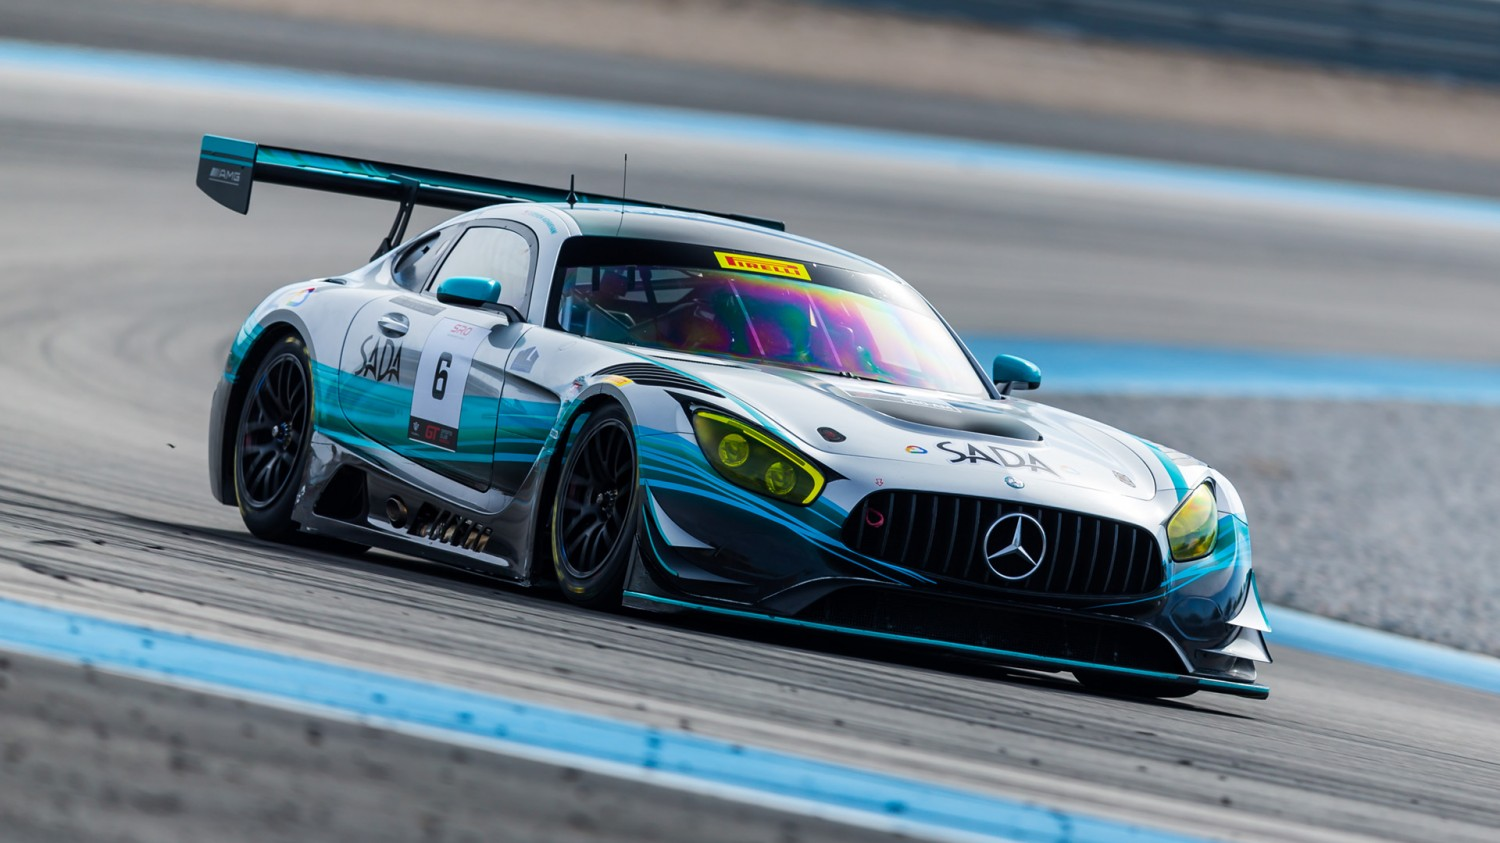 US RaceTronics Mercedes-AMG GT3 and Steven Aghakhani Win First Race of Inaugural Winter Invitational Series